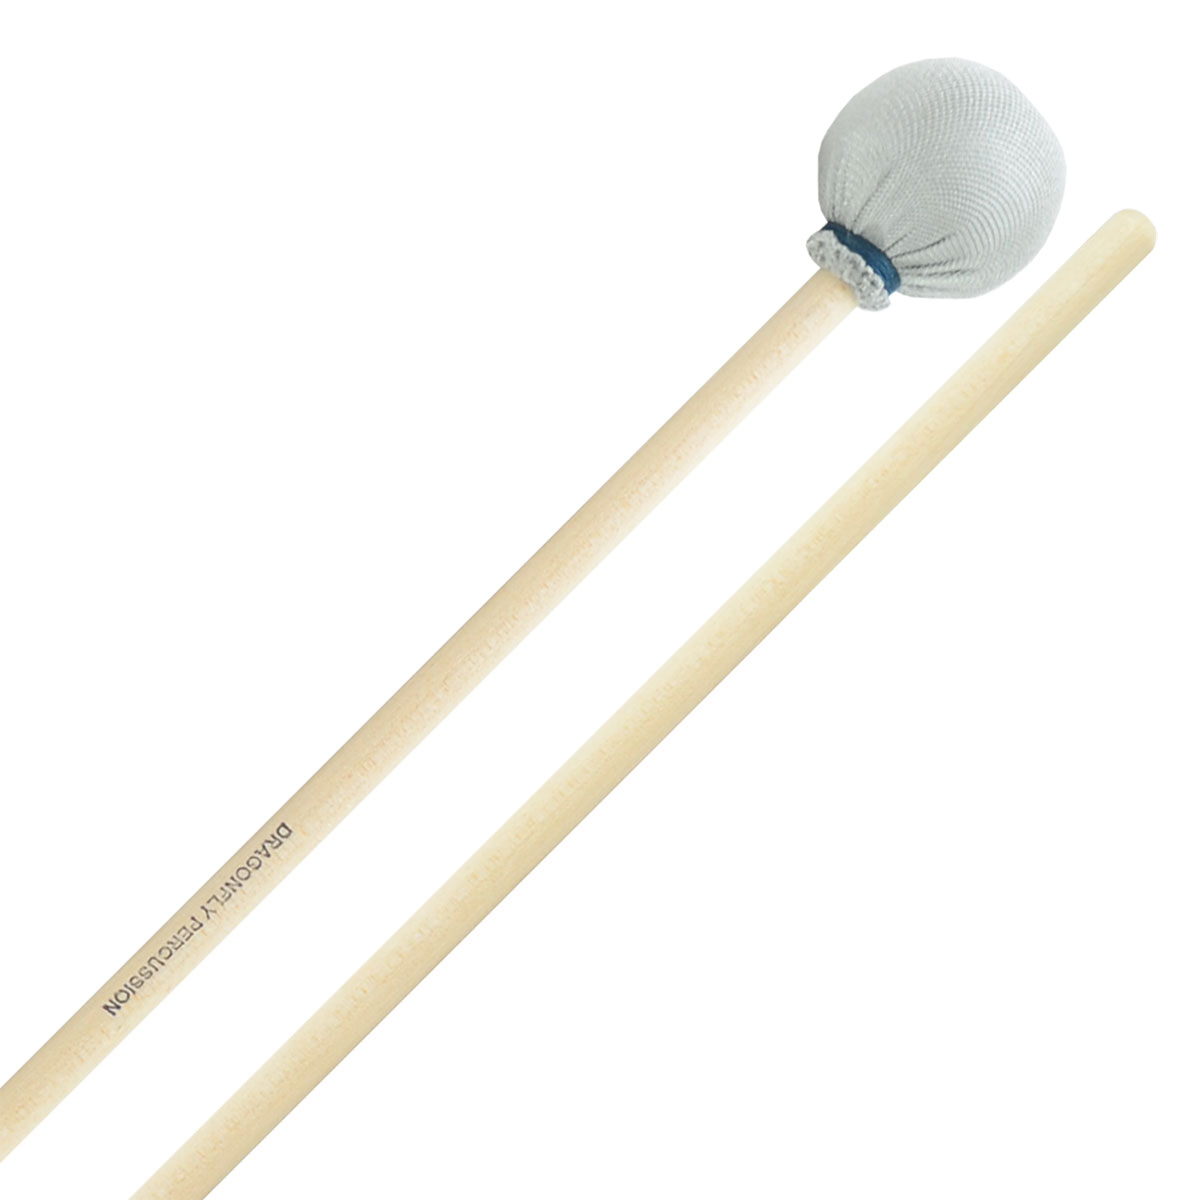 Dragonfly Percussion Medium Soft Marimba Mallets with Birch Handles